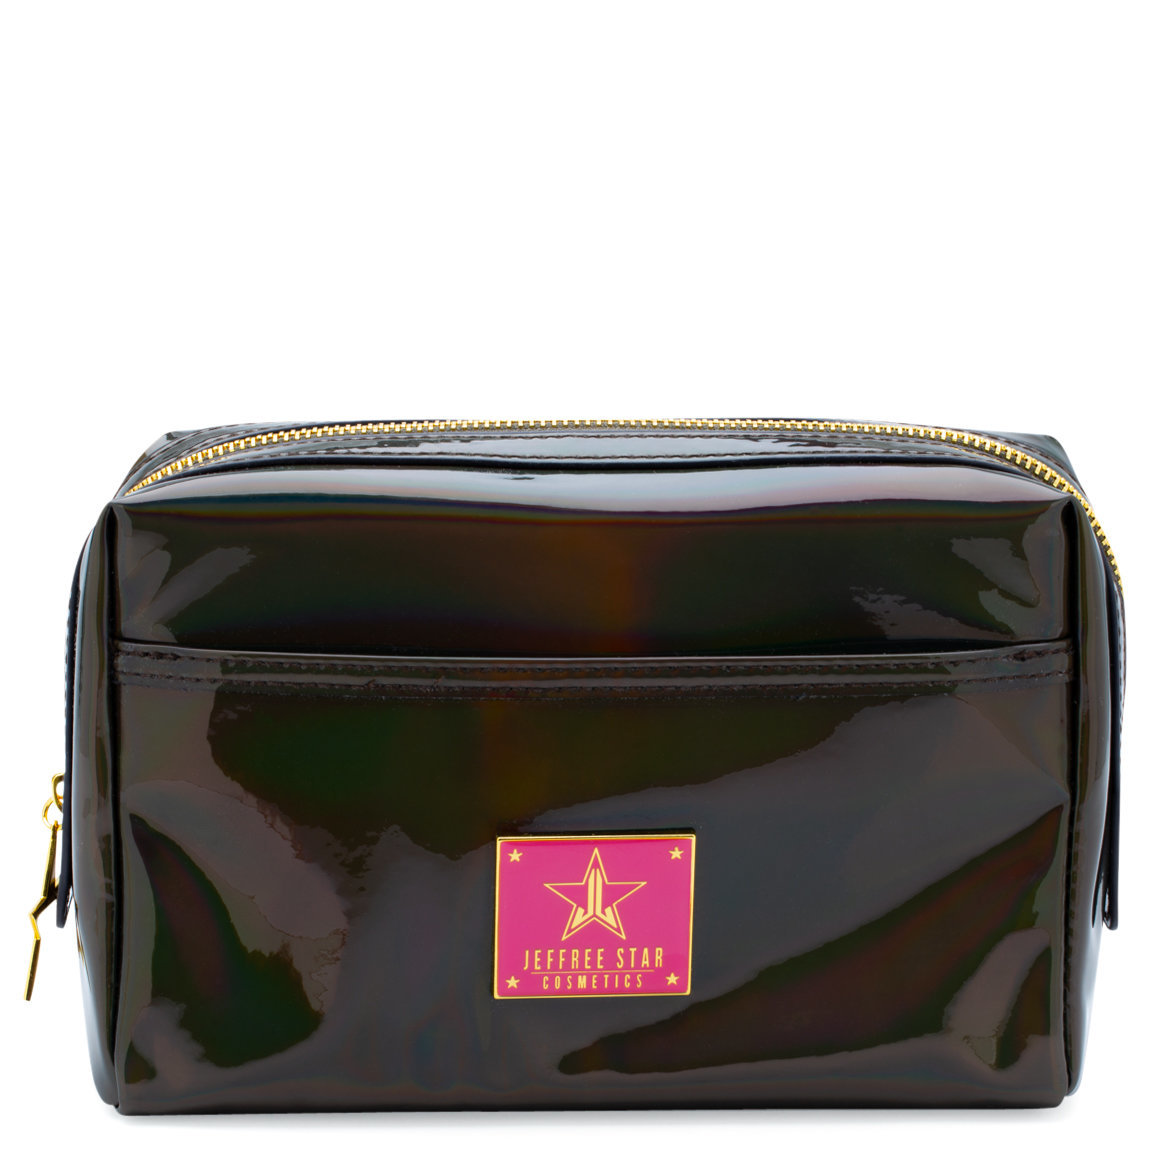 Jeffree Star Cosmetics Makeup Bag Holographic Black product swatch.